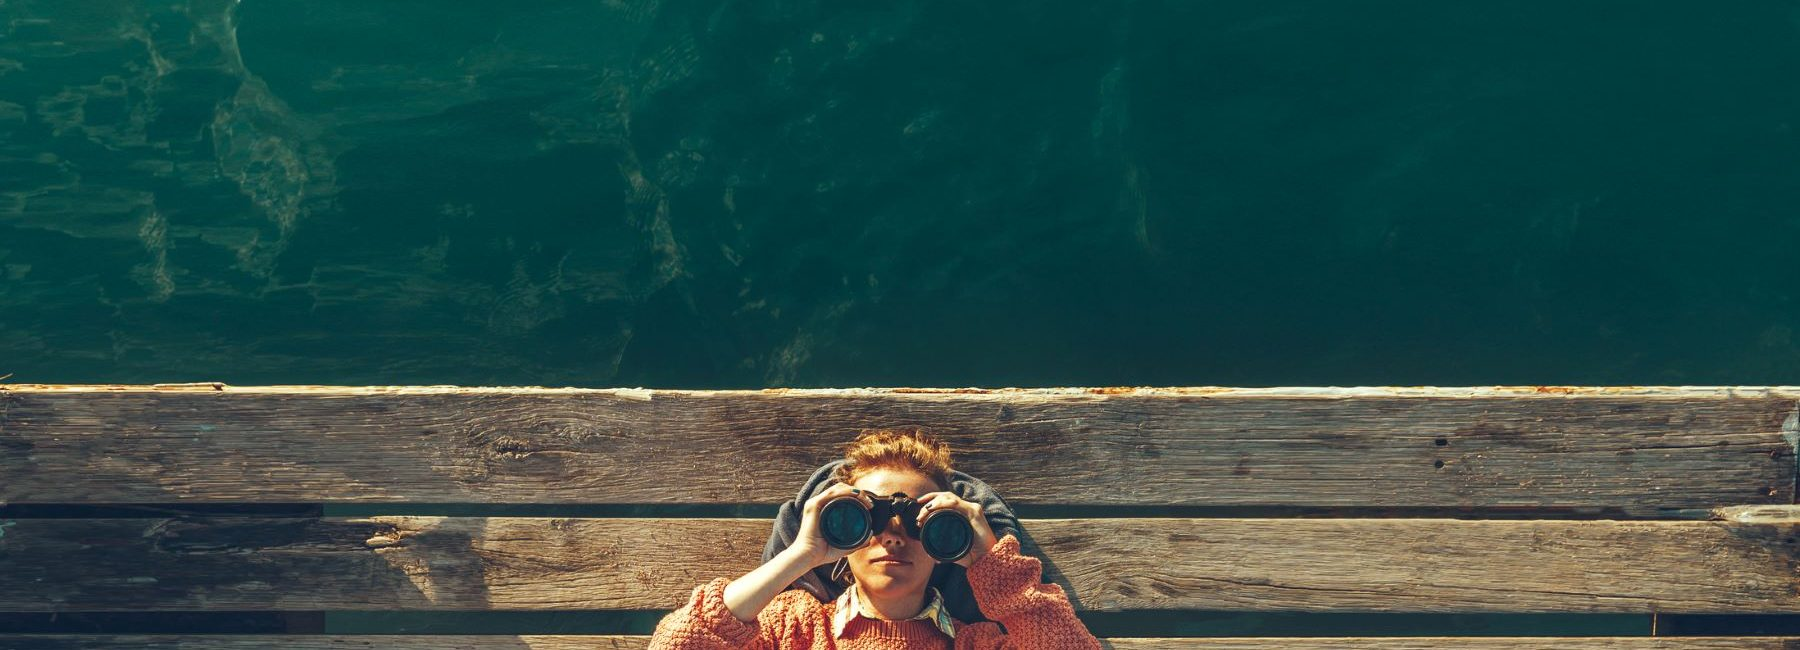 Girl with Binoculars on pier by the sea